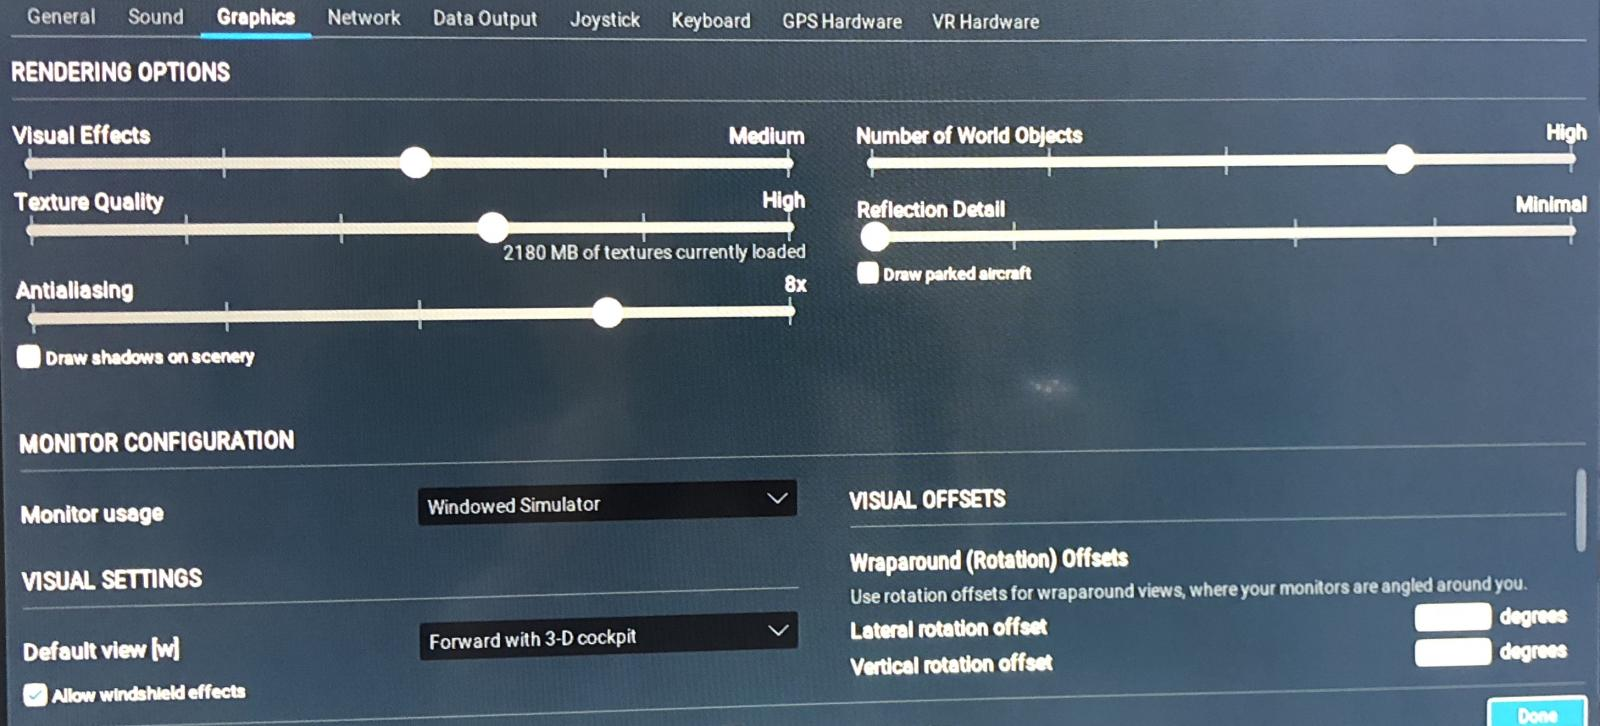 HDR or AA x16 and objects at máximum? - VR in X-Plane 11 - X-Plane